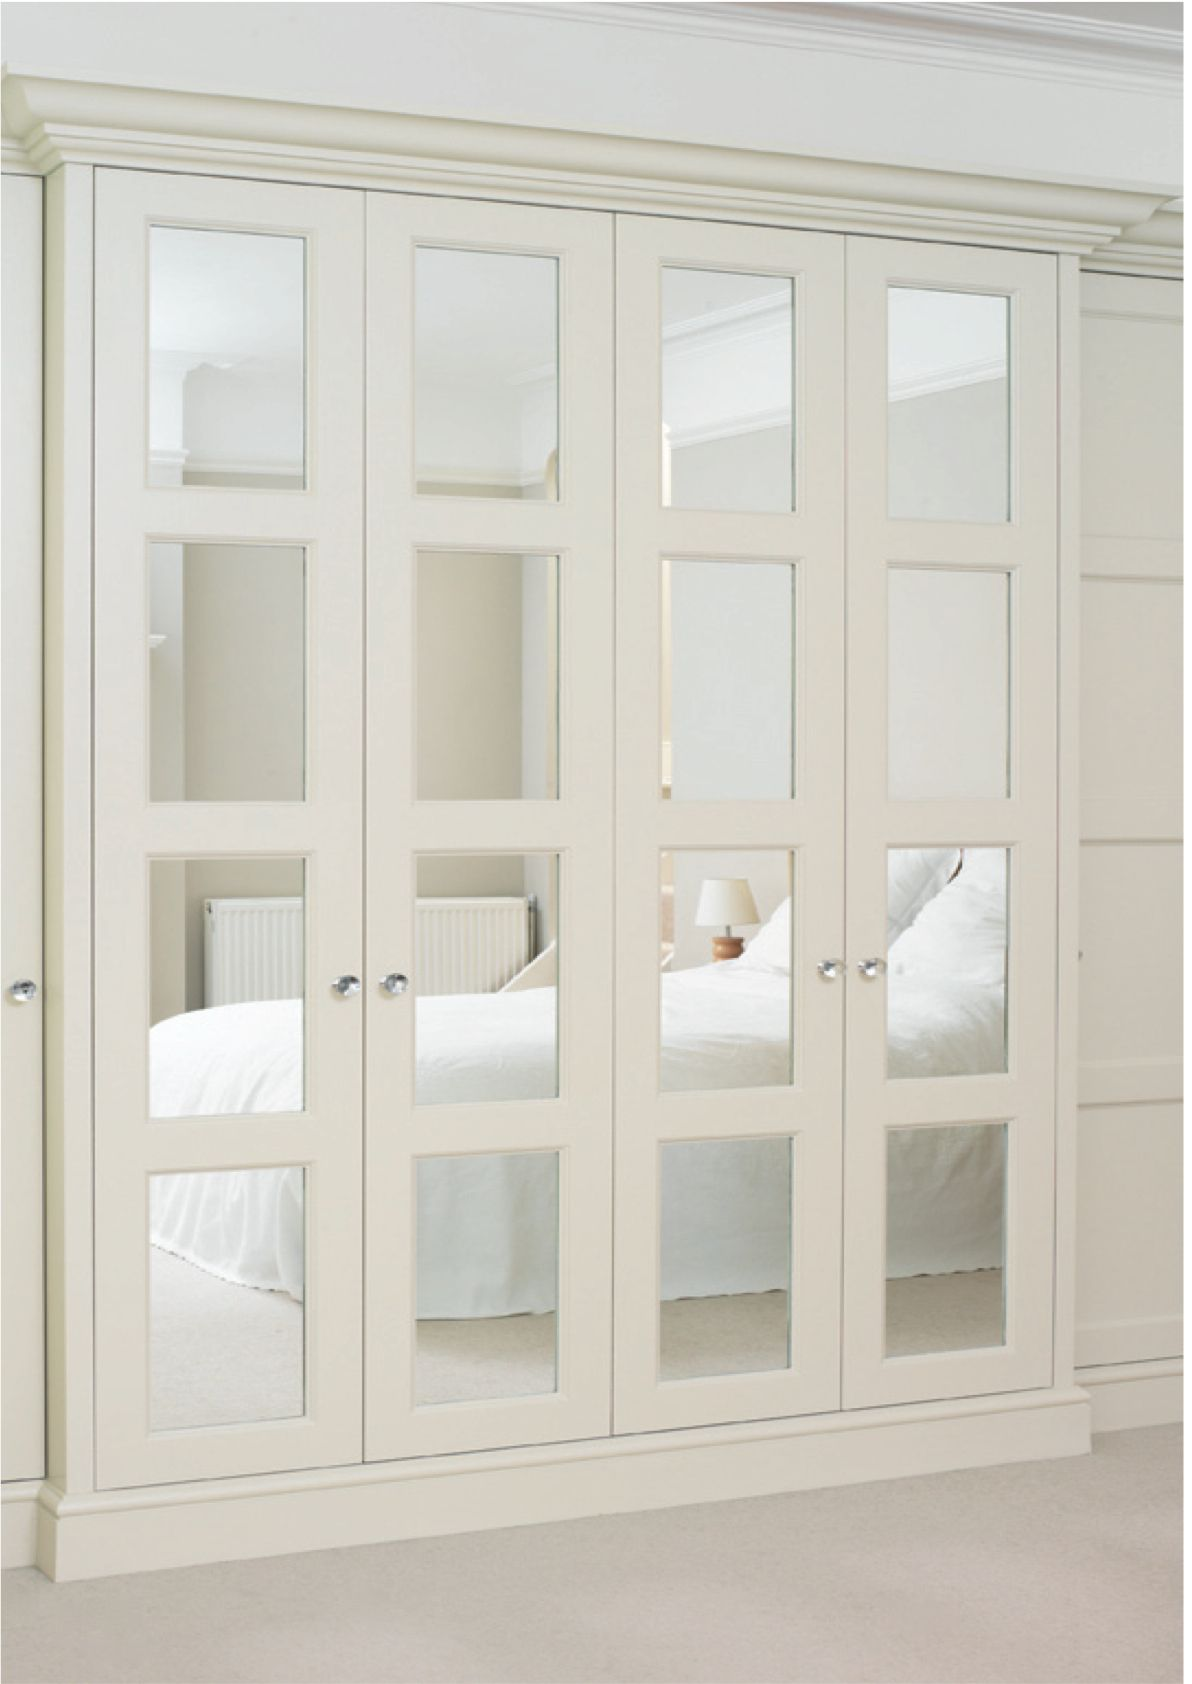 Beautiful master bedroom closets - I Really Like The Idea Of Having Closet Doors That Open Accordion Style Like These But It Would Probably Be Impractical Since The Door To The Spare Bedroom